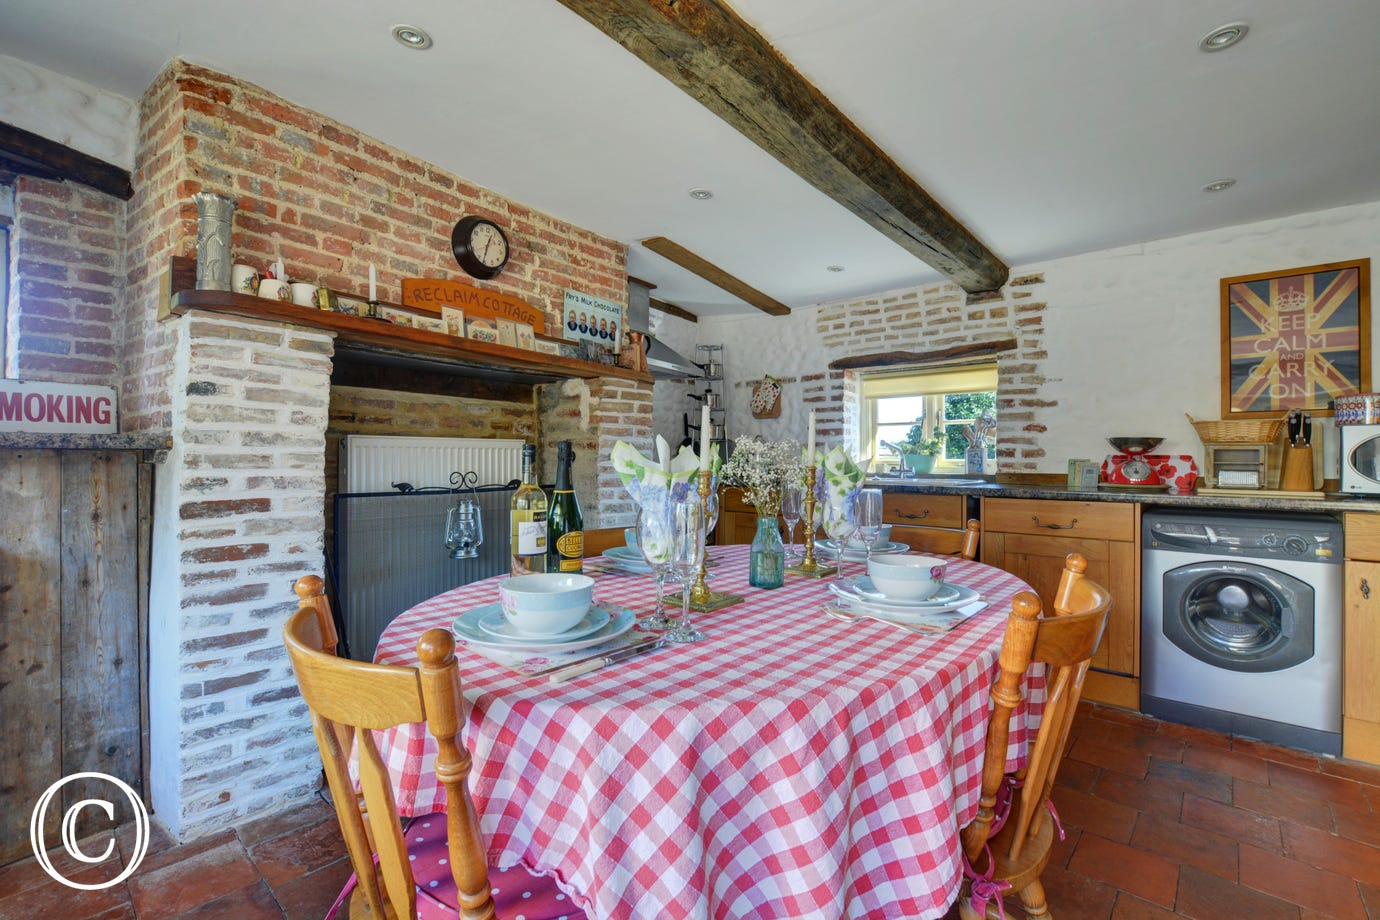 Light and airy dining space with table and chairs, perfect for family meals